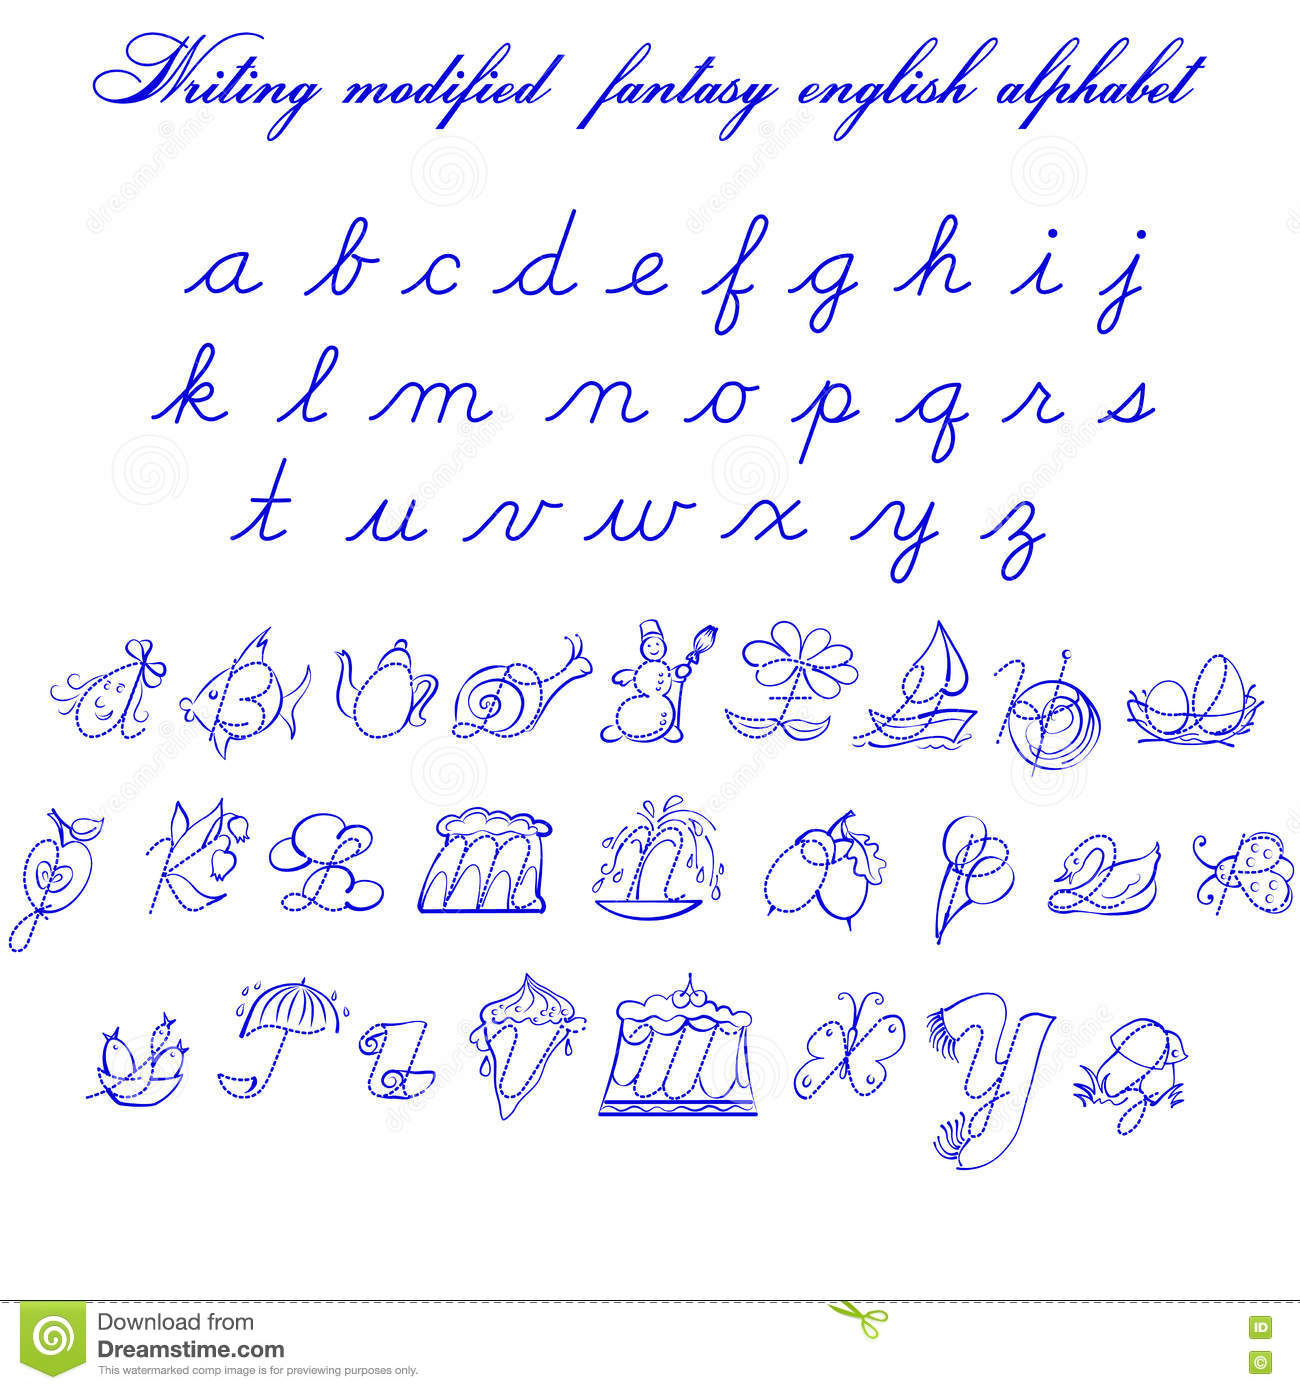 an examination of cursive writing Cursive writing has been under scrutiny lately is it a useless skill to have in a technology-driven world or is it a form of writing.